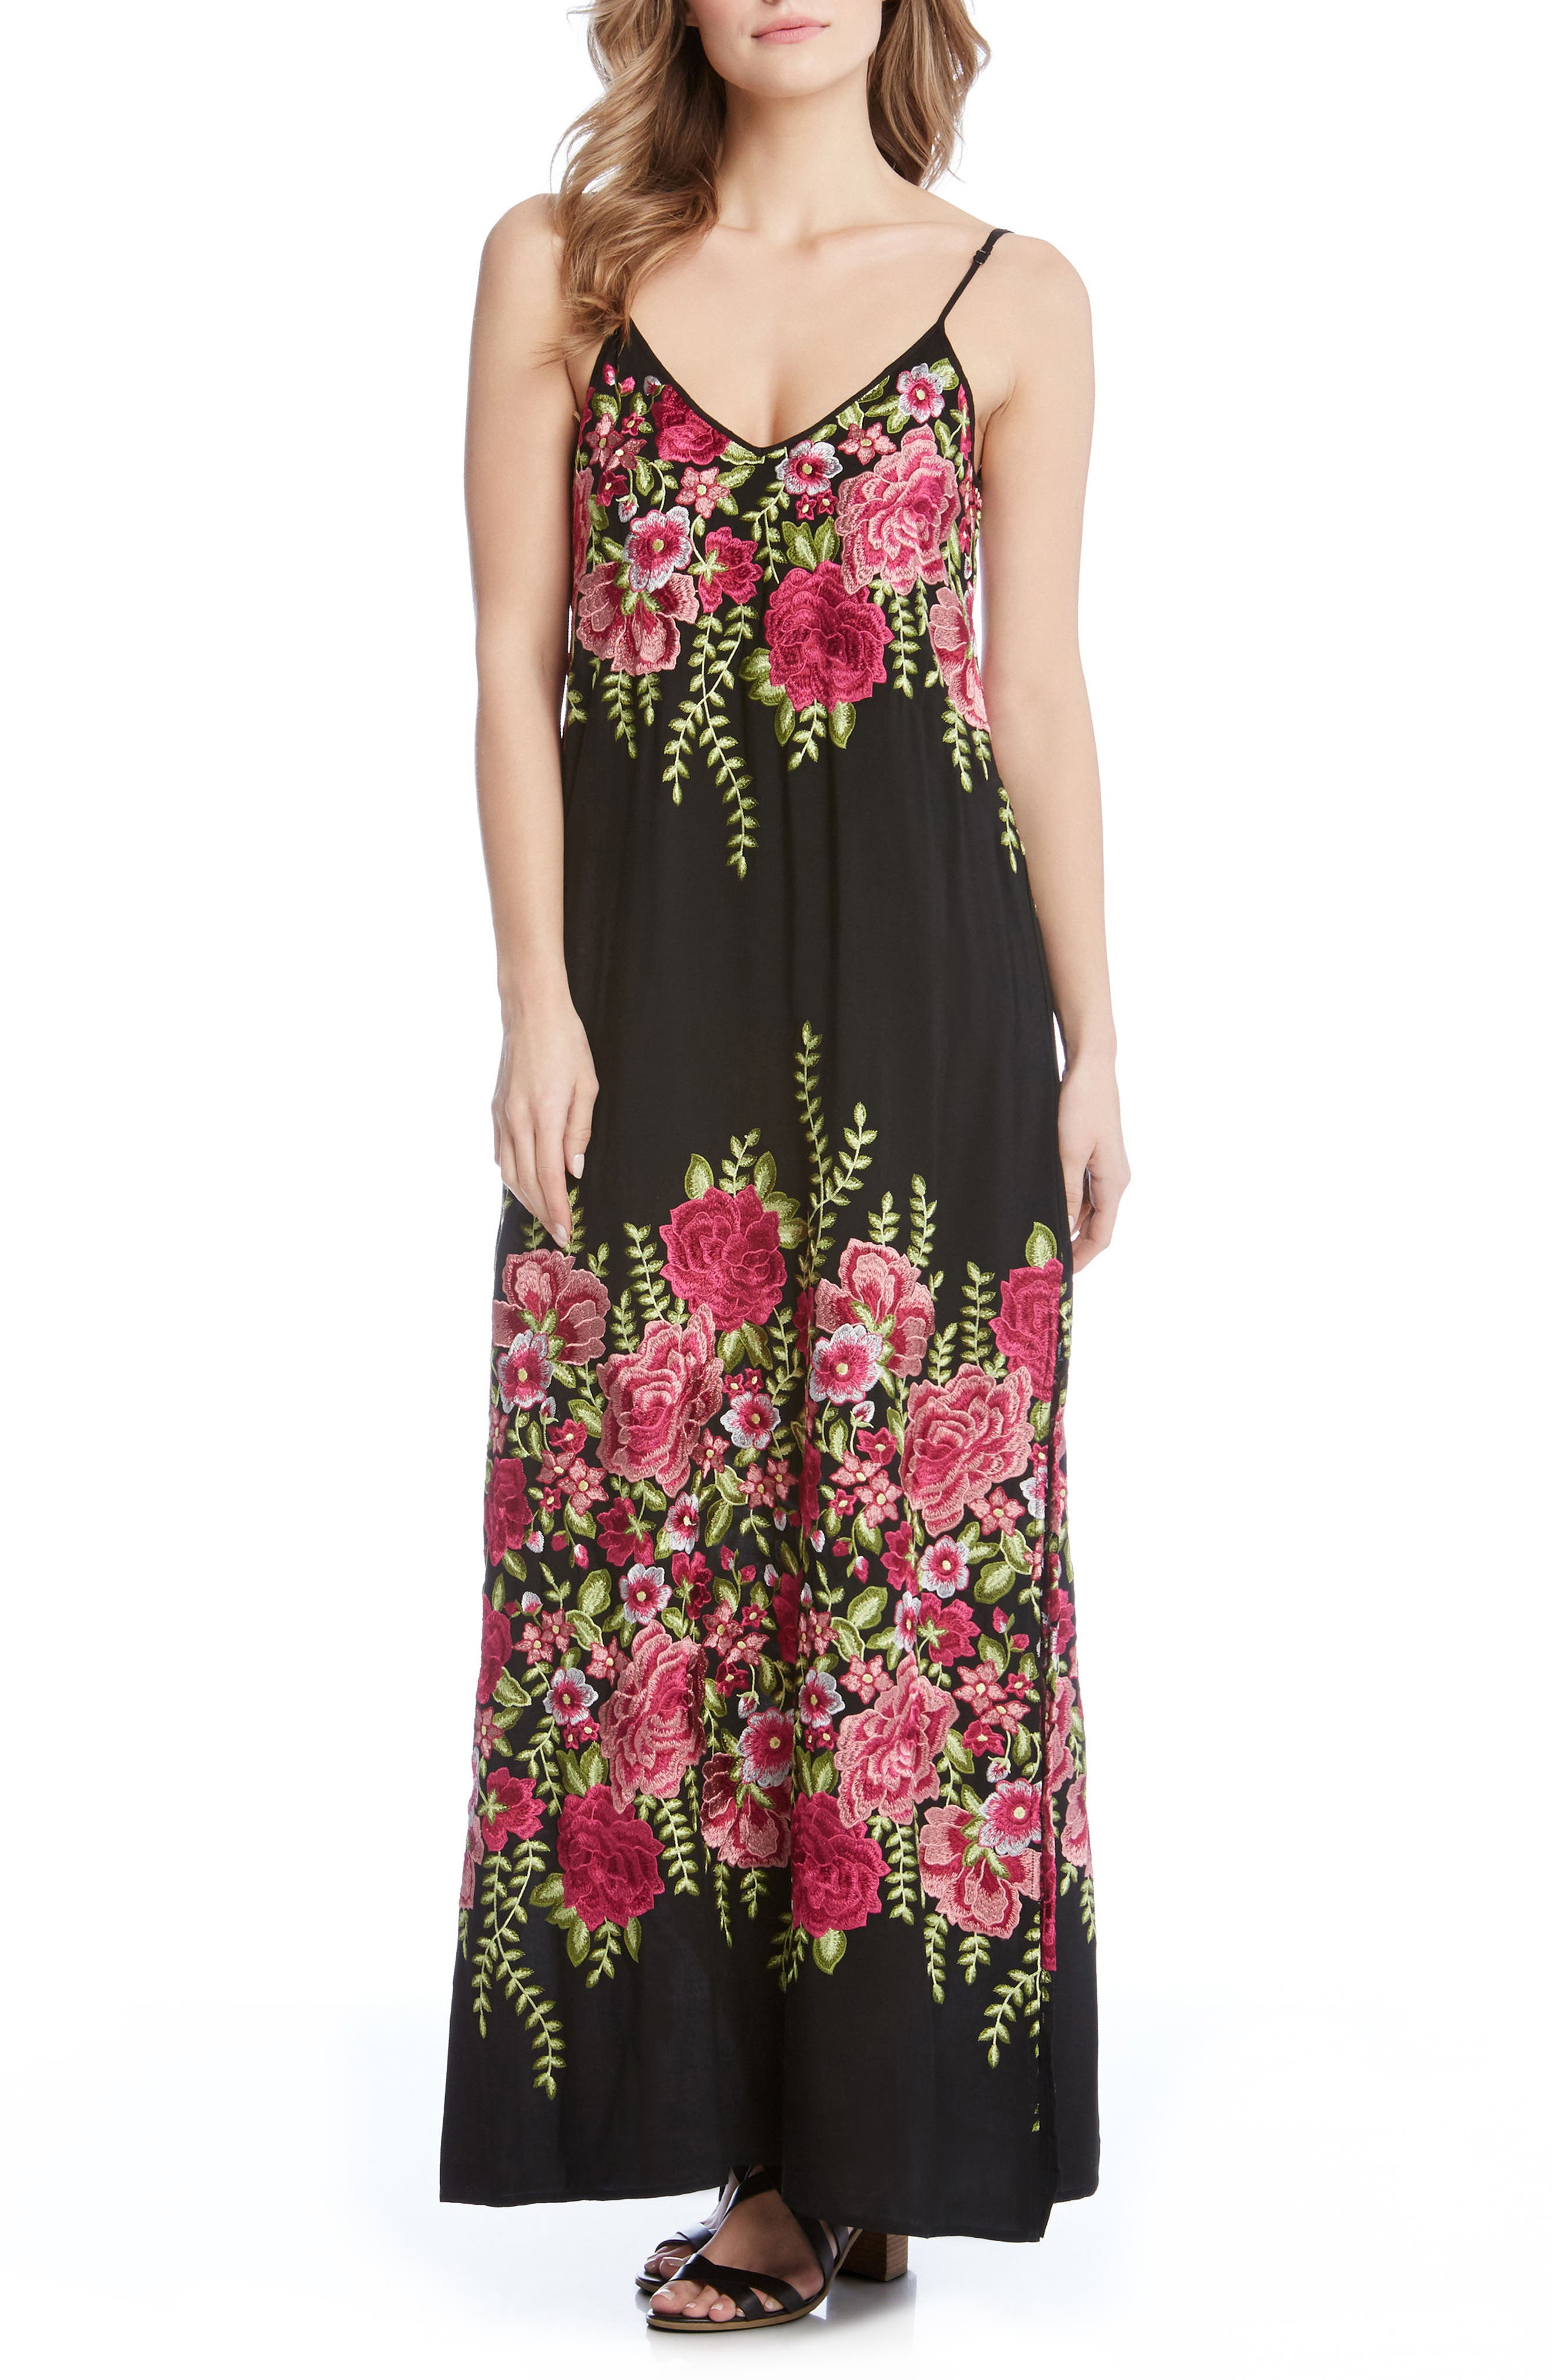 Floral Embroidered Maxi Dress,                         Main,                         color, Black/ Embroidery